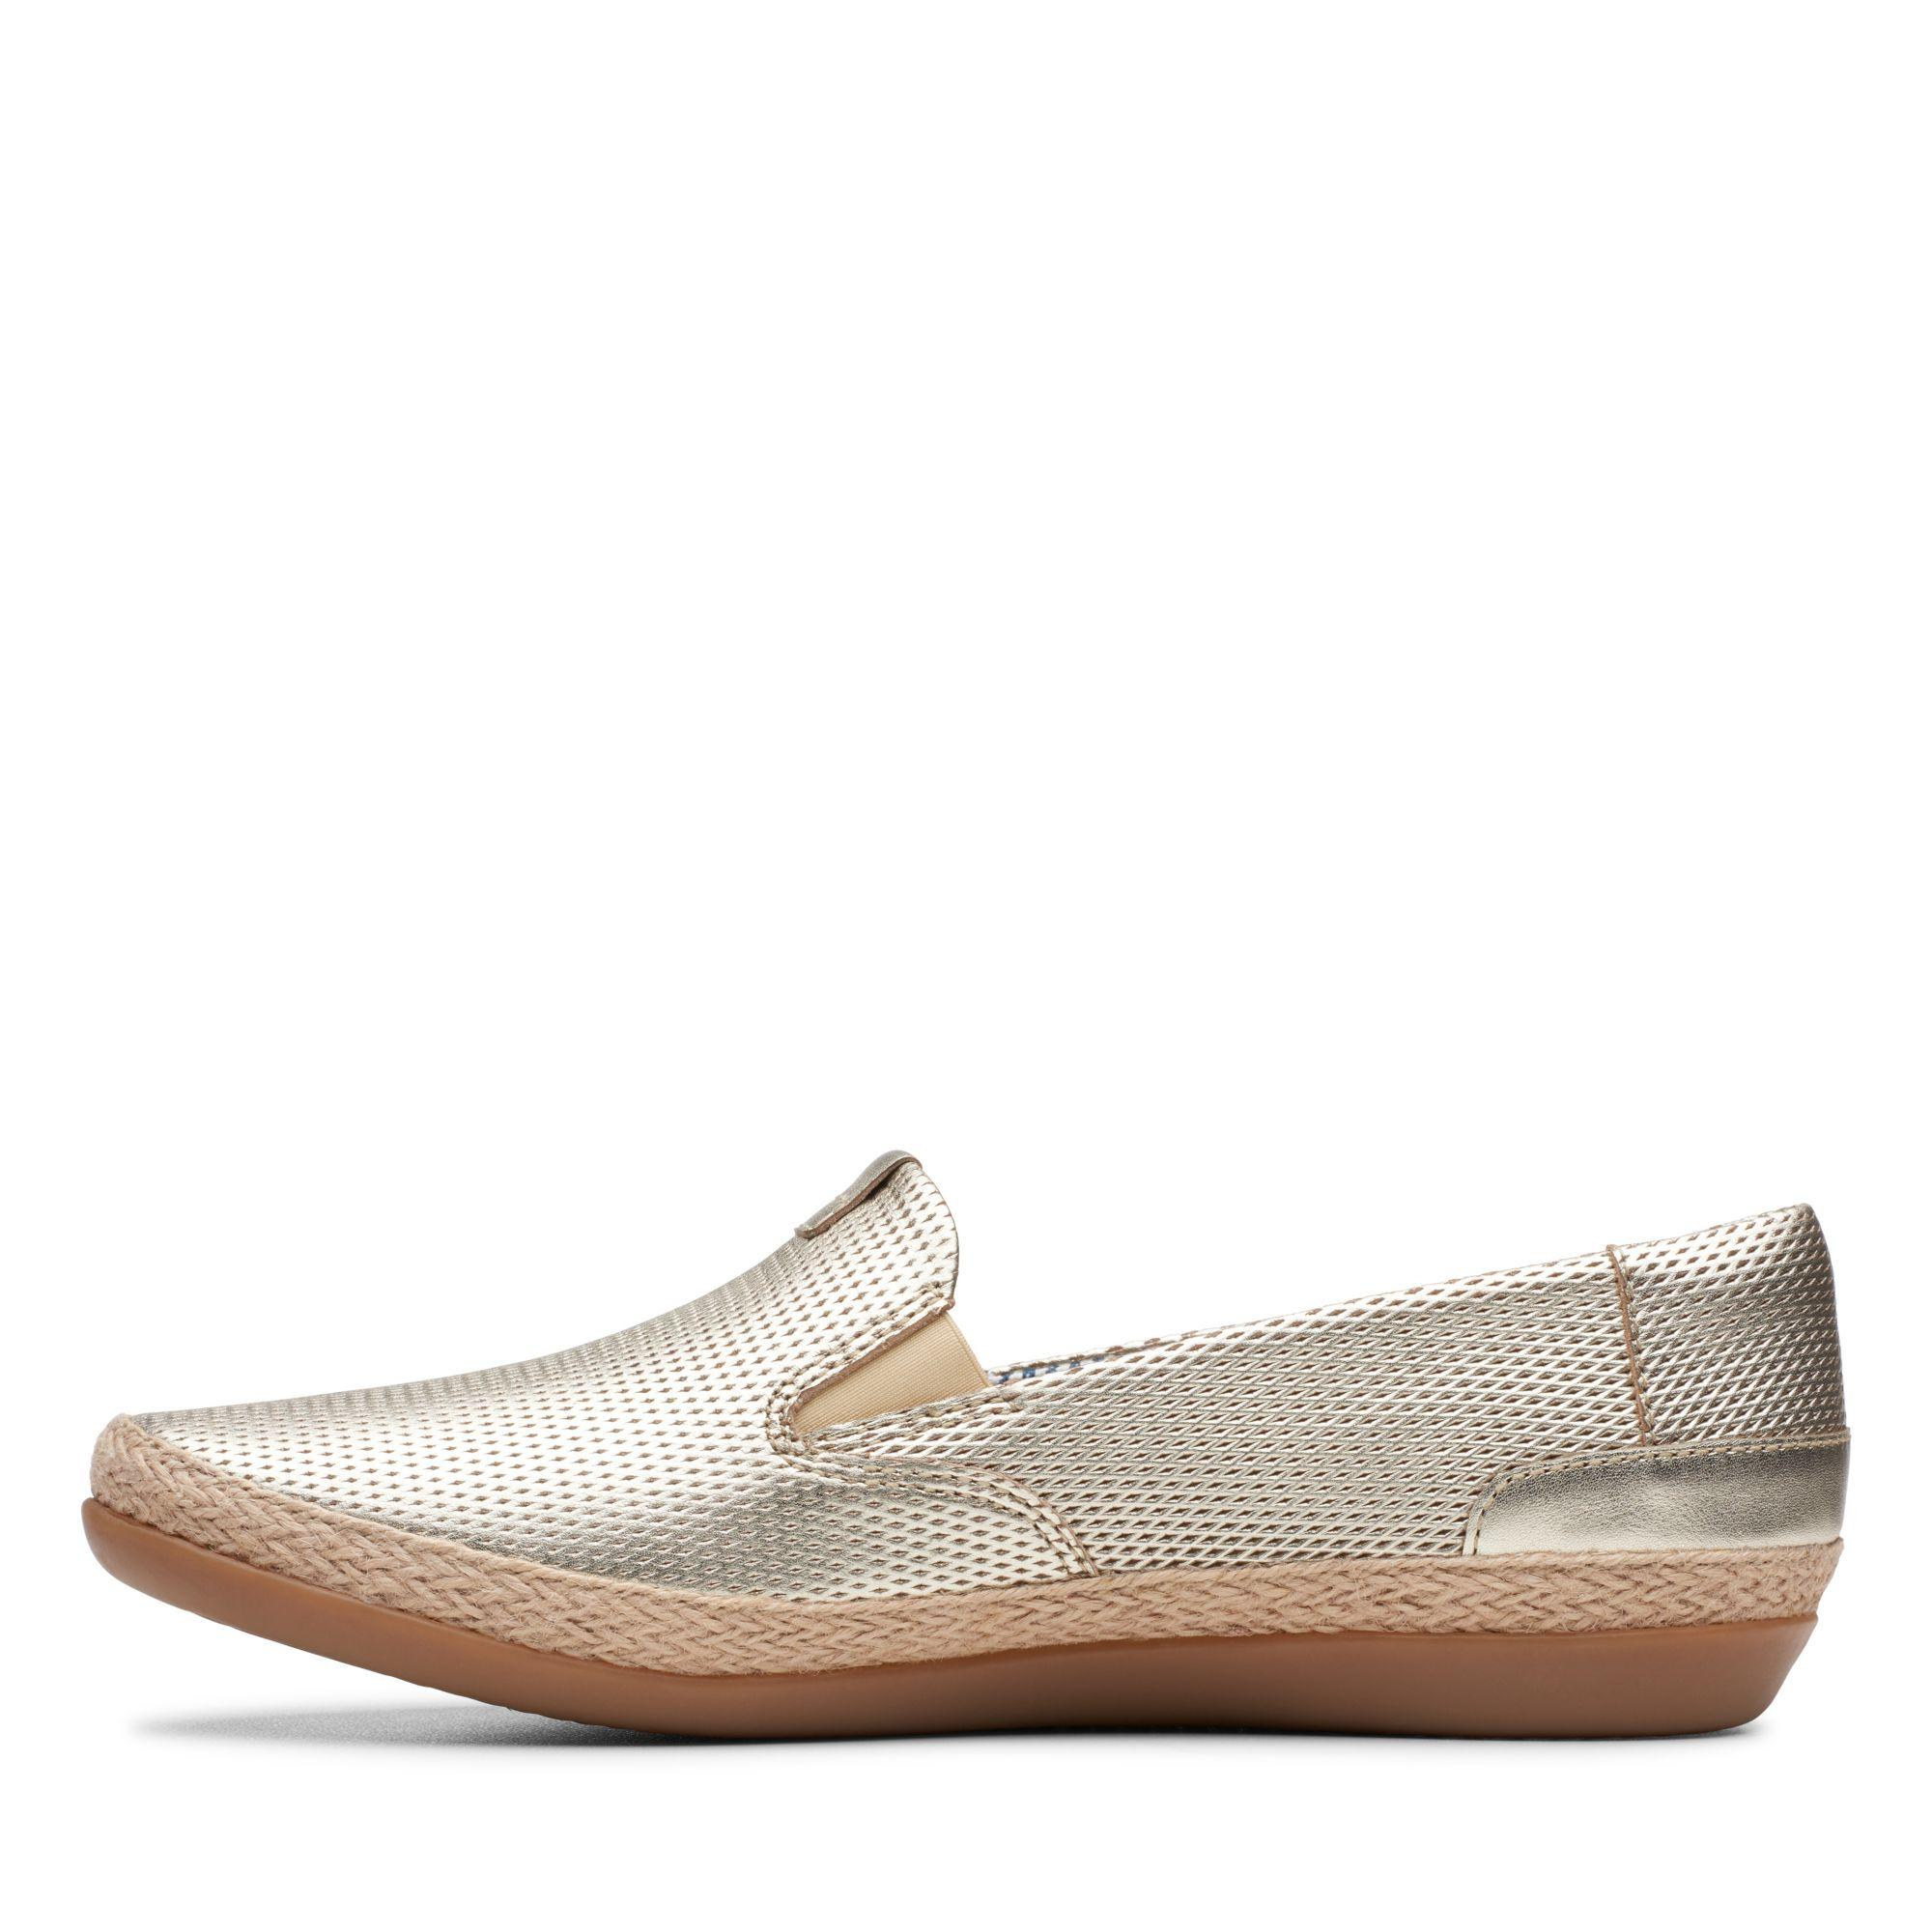 Clarks Danelly Iris in Champagne